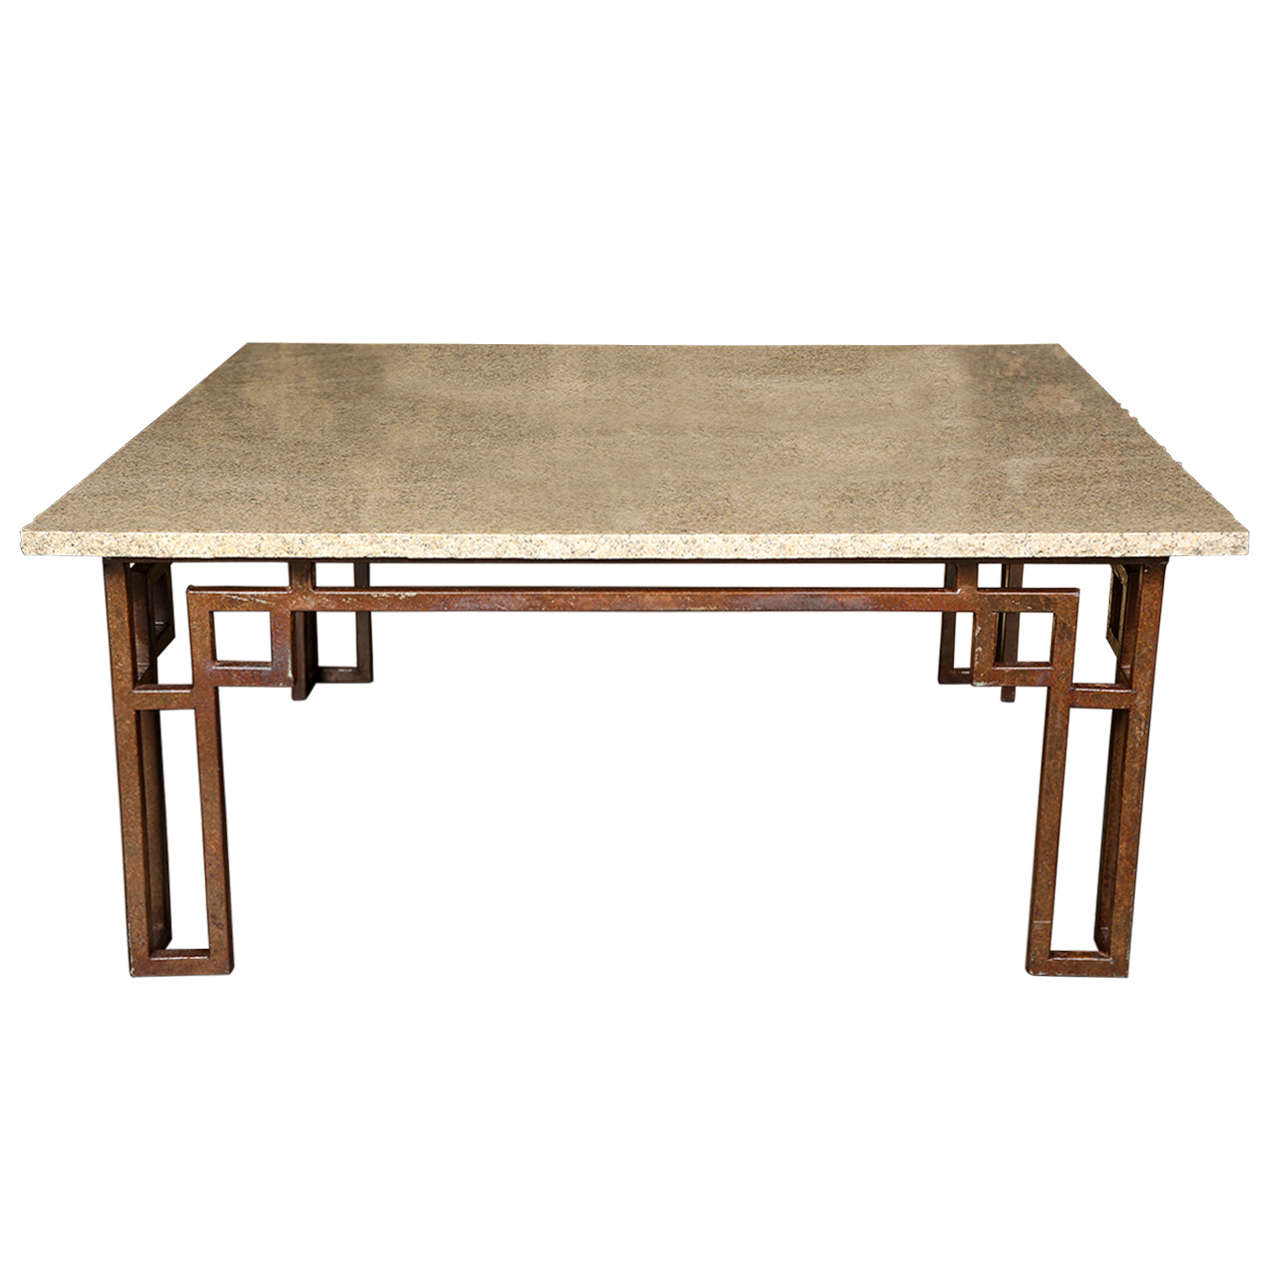 Travertine Slab Coffee Table: Travertine Coffee Table Jean Michel Wilmotte